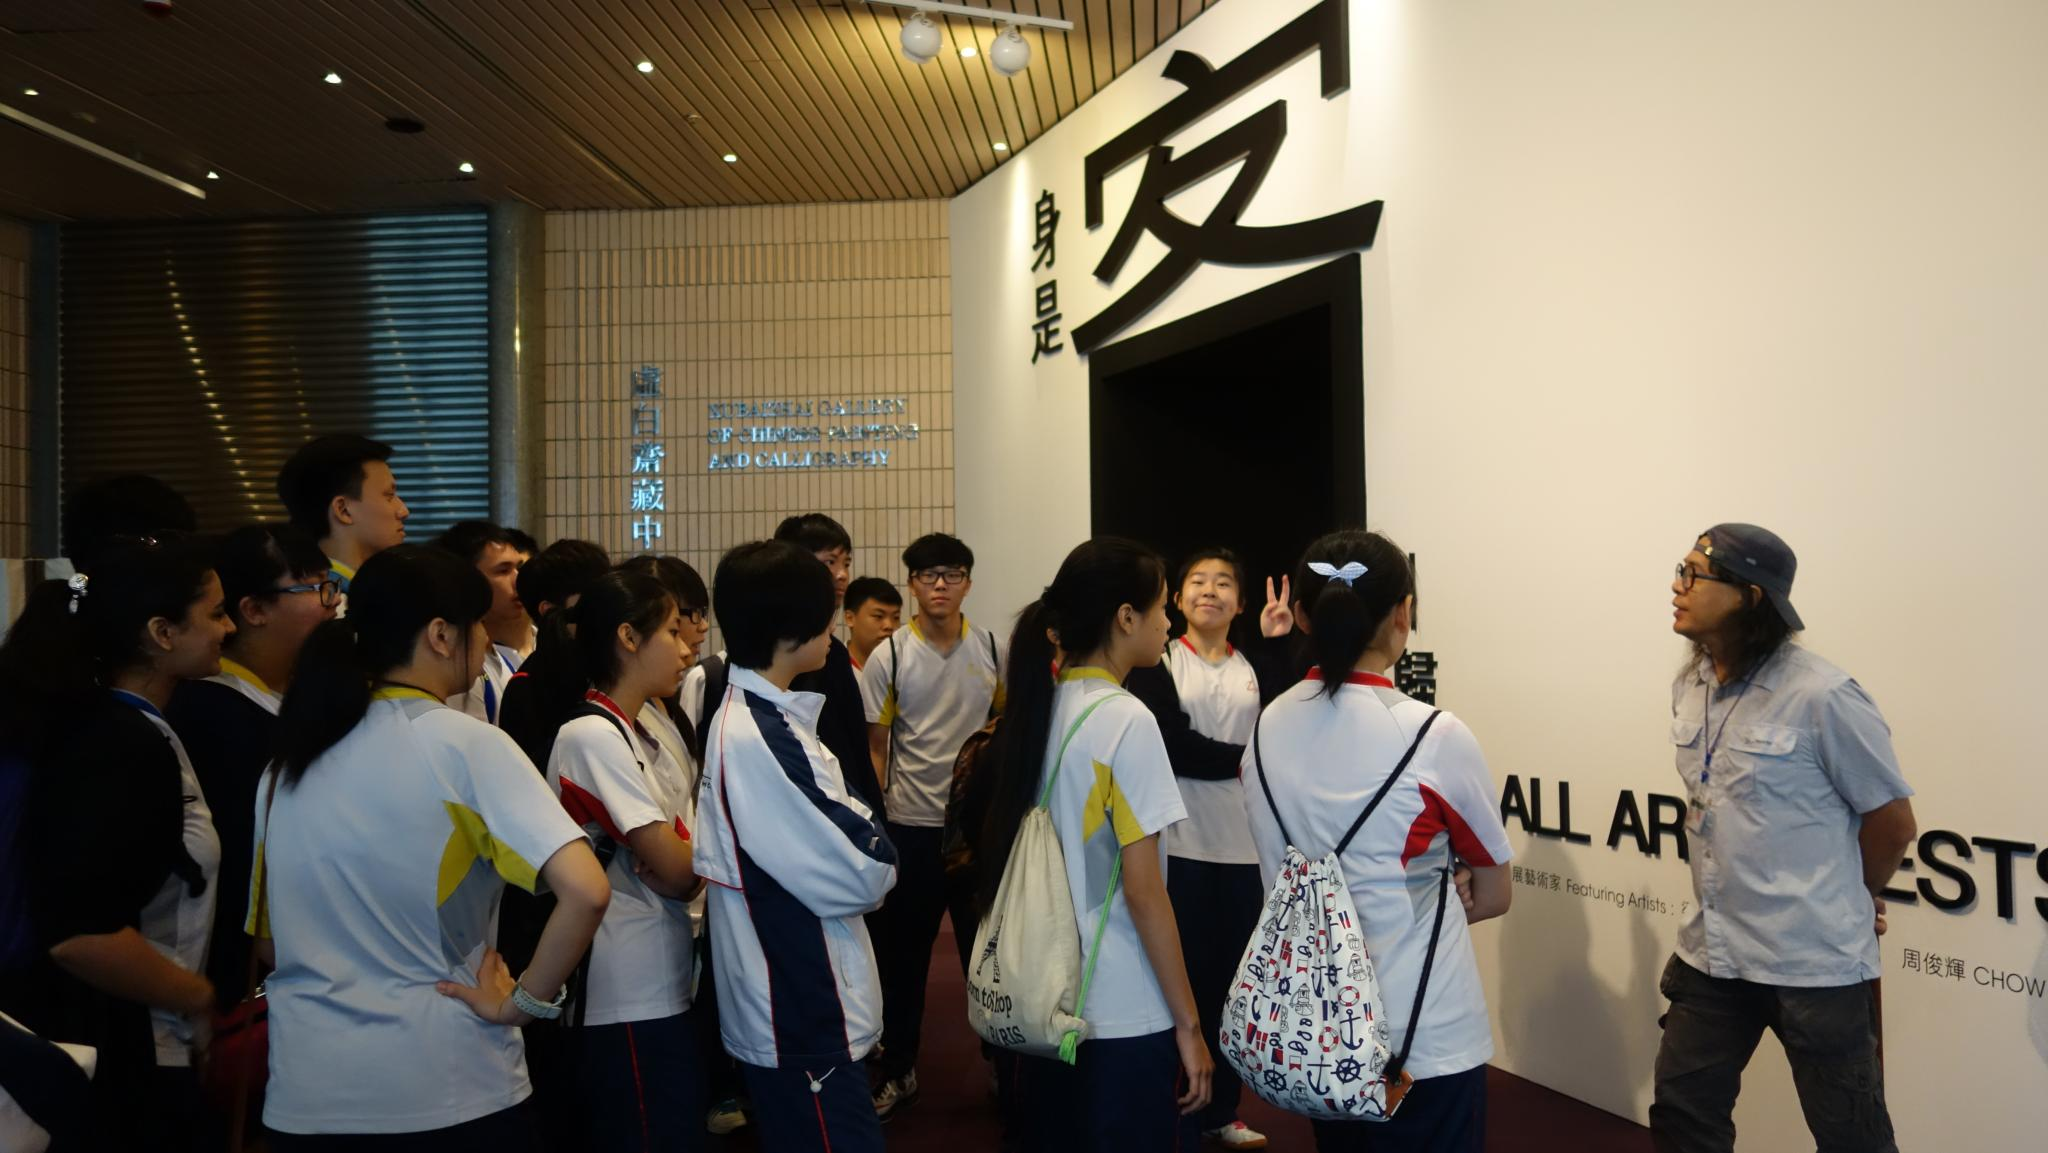 Students are listening to the docent's introduction about the exhibition.